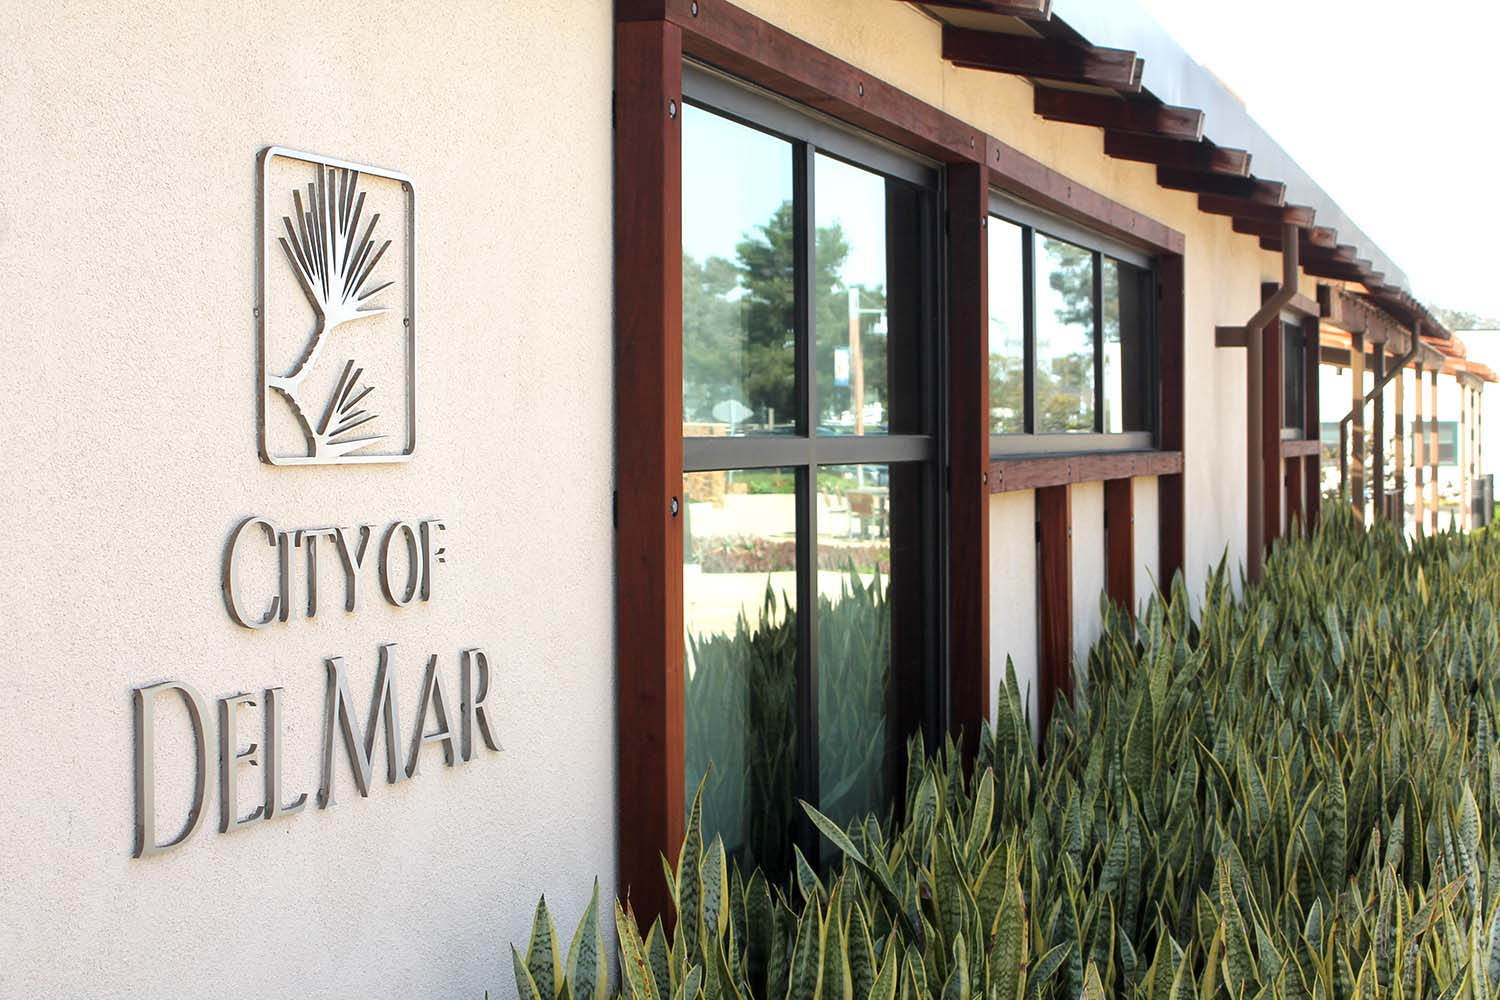 Del Mar Council looks to business and financial recovery, improving communication